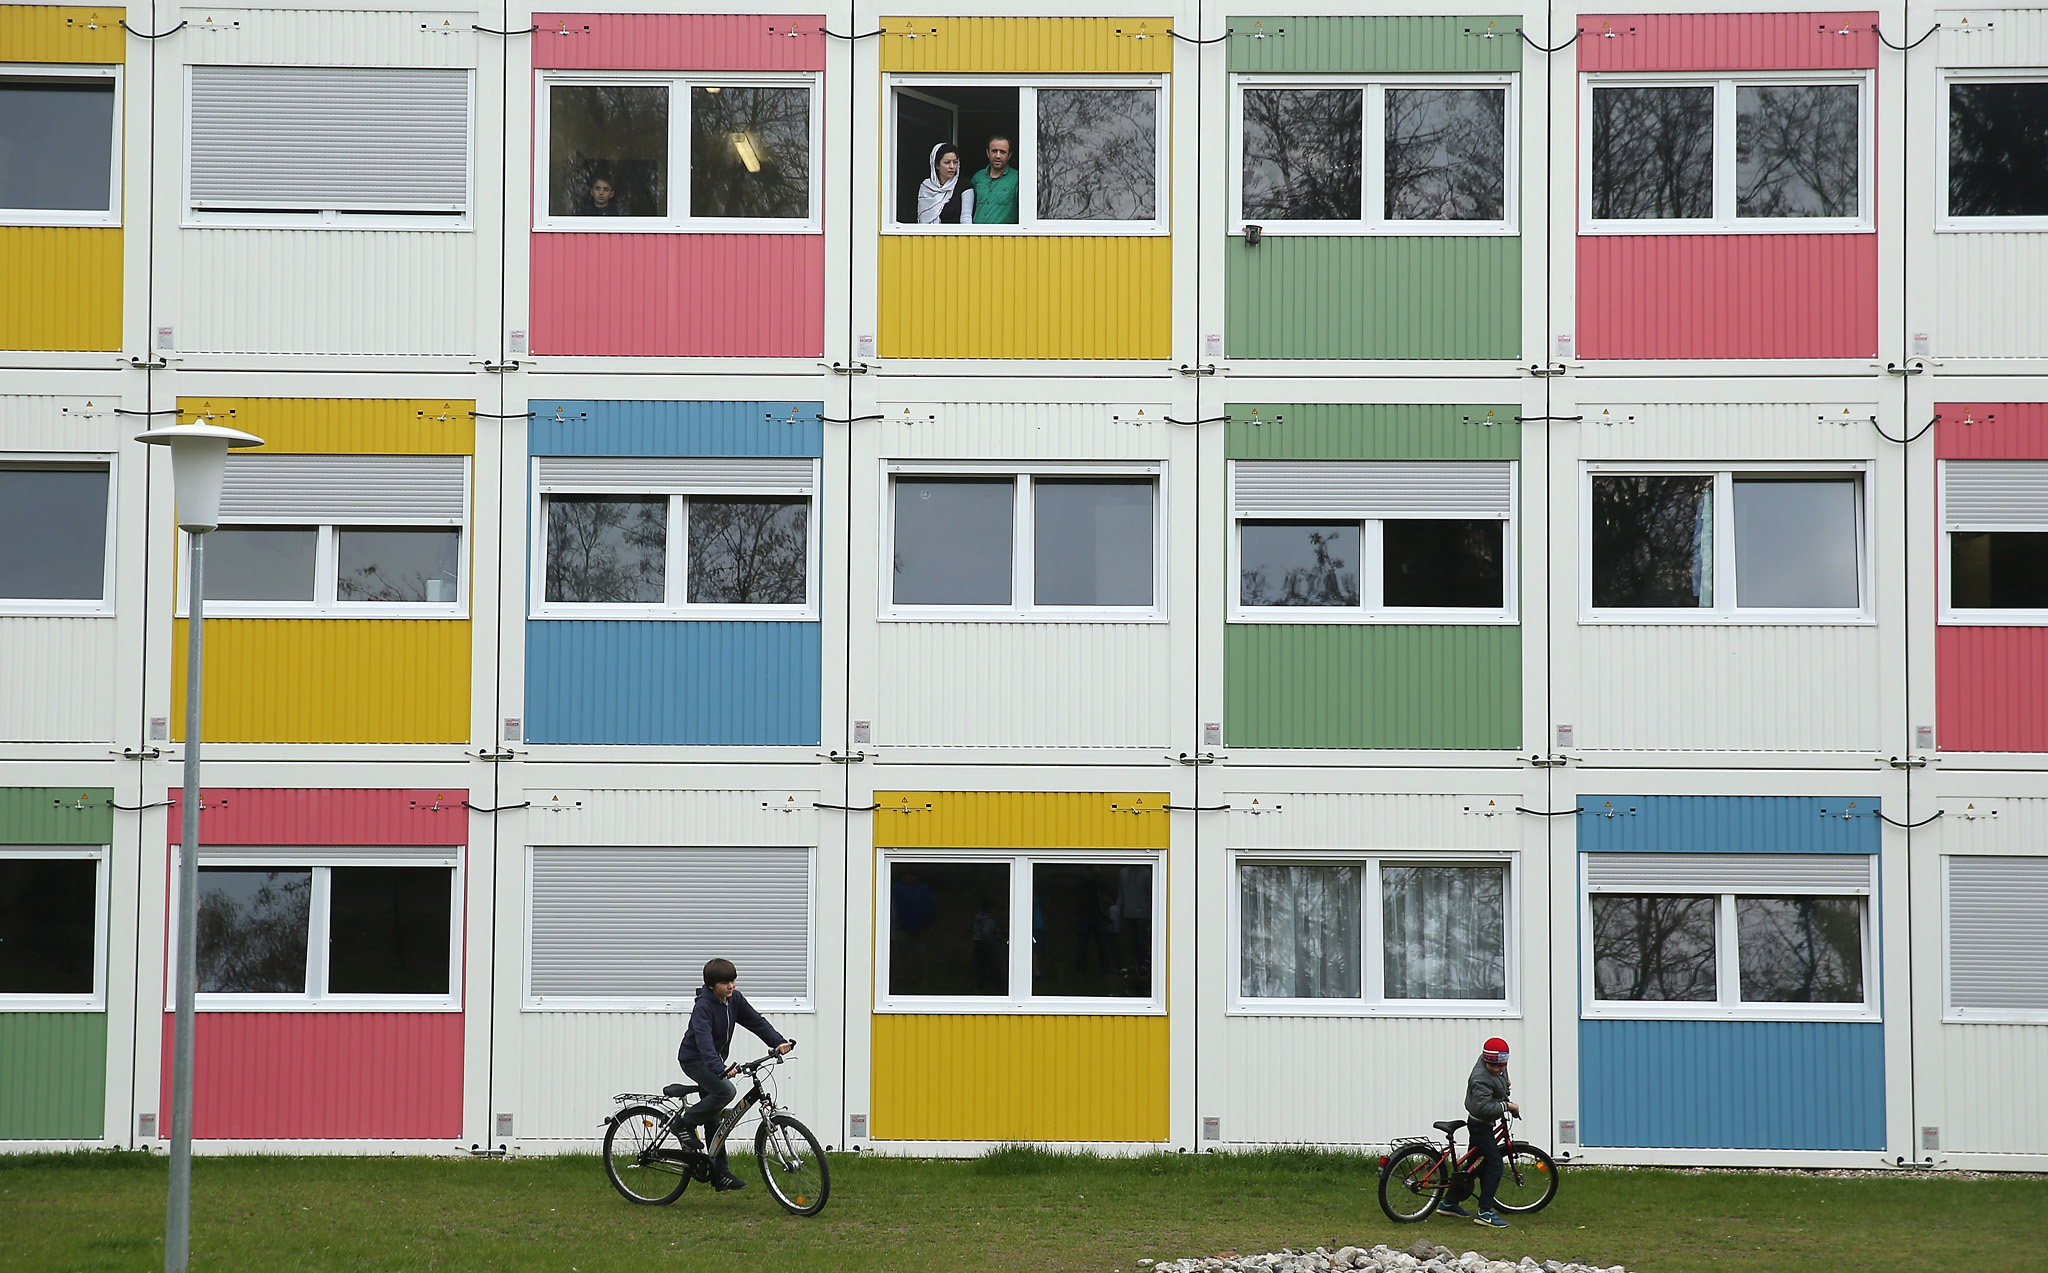 As Refugee Flow Ebbs Germany Concentrates On Integration...BERLIN, GERMANY - APRIL 14:  Children play as residents look from their window at the container settlement shelter for refugees and migrants in Zehlendorf district on April 14, 2016 in Berlin, Germany. Locals, many of them retirees, come to the shelter regularly to help the refugees and migrants, who are from countries including Syria, Iraq, Afghanistan, Kosovo and Serbia. The coalition partners of the German government yesterday announced a new package of legislation that includes measures to foster the integration of refugees who have received asylum status in Germany.  (Photo by Sean Gallup/Getty Images)